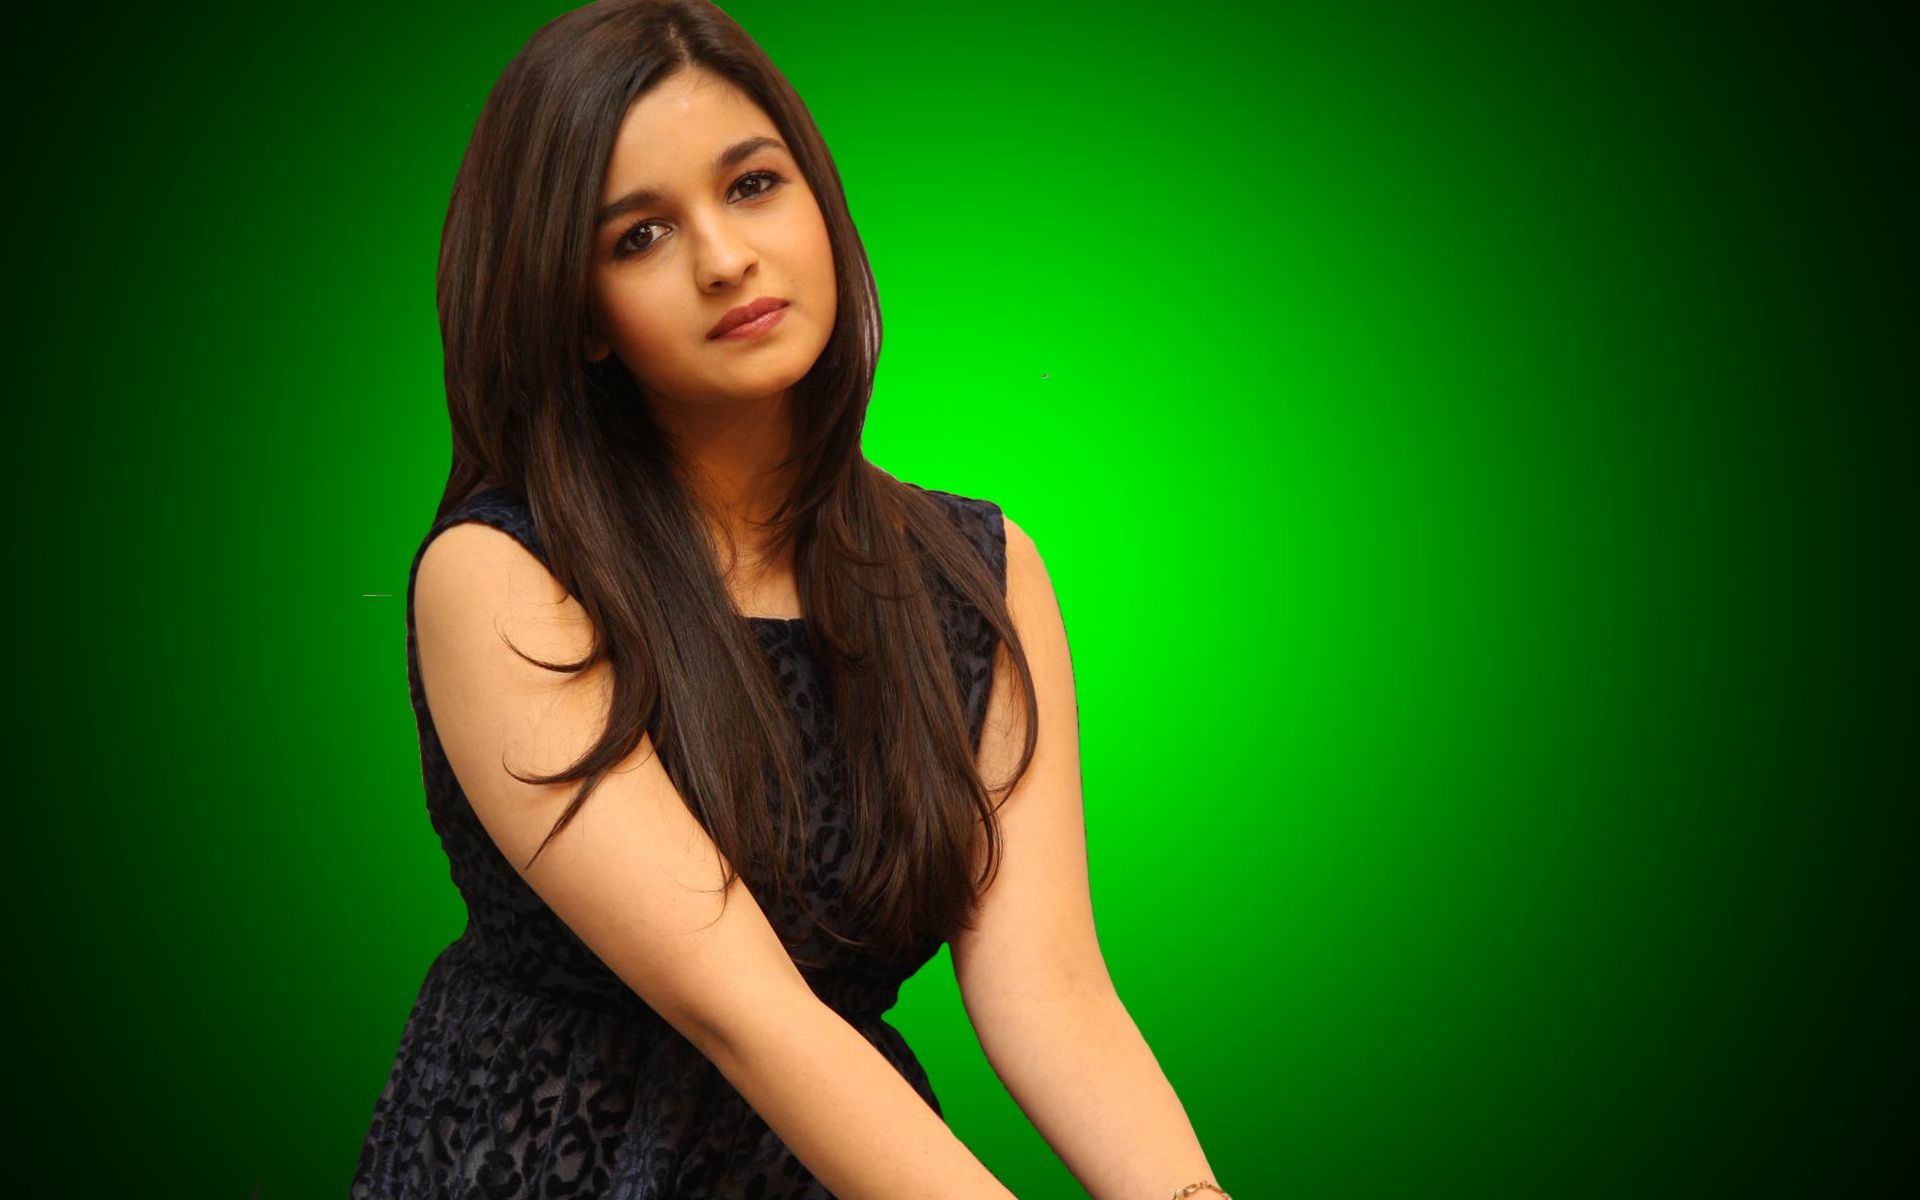 Alia bhatt black dress wallpaper